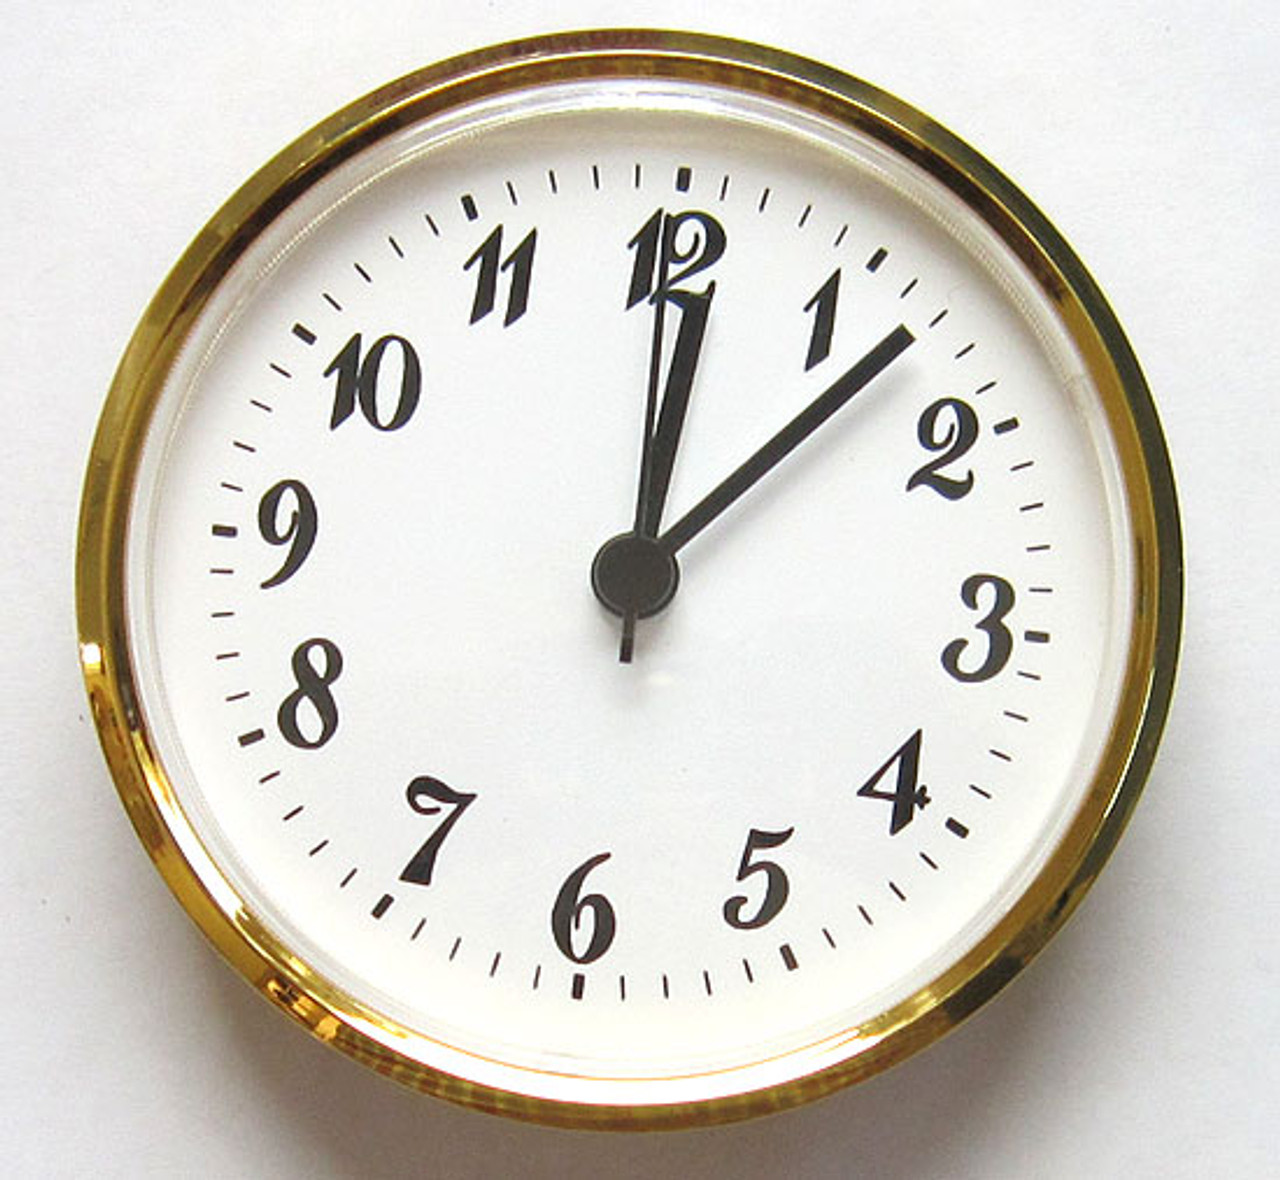 4 Inch White Face Arabic Clock Insert/Fit Up